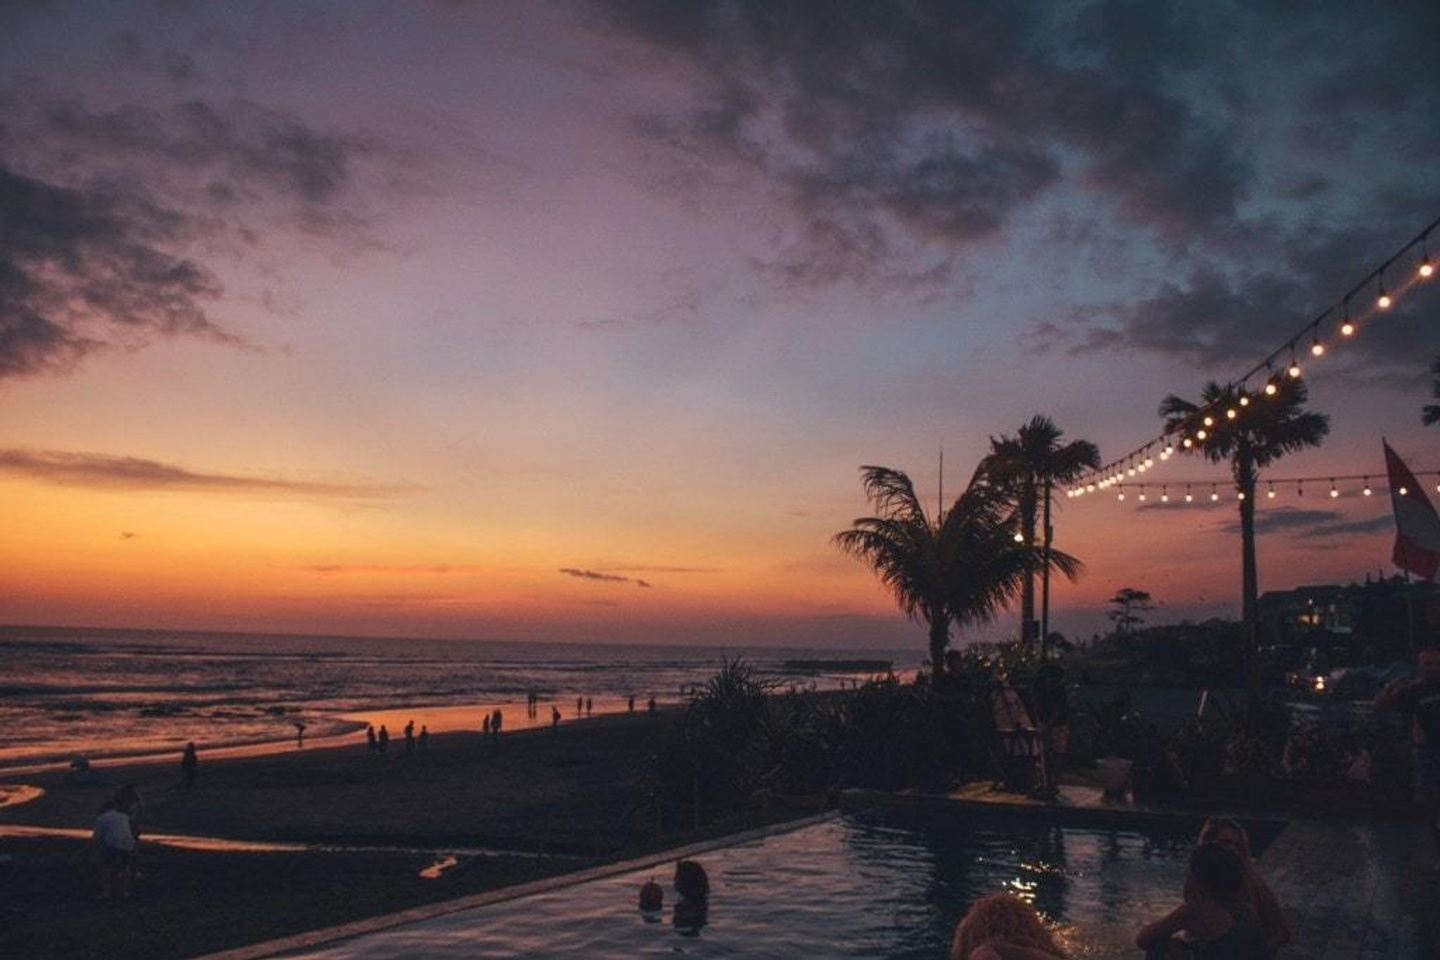 RECHARGE & LIVE - A NEW YEAR'S YOGA RETREAT IN BALI